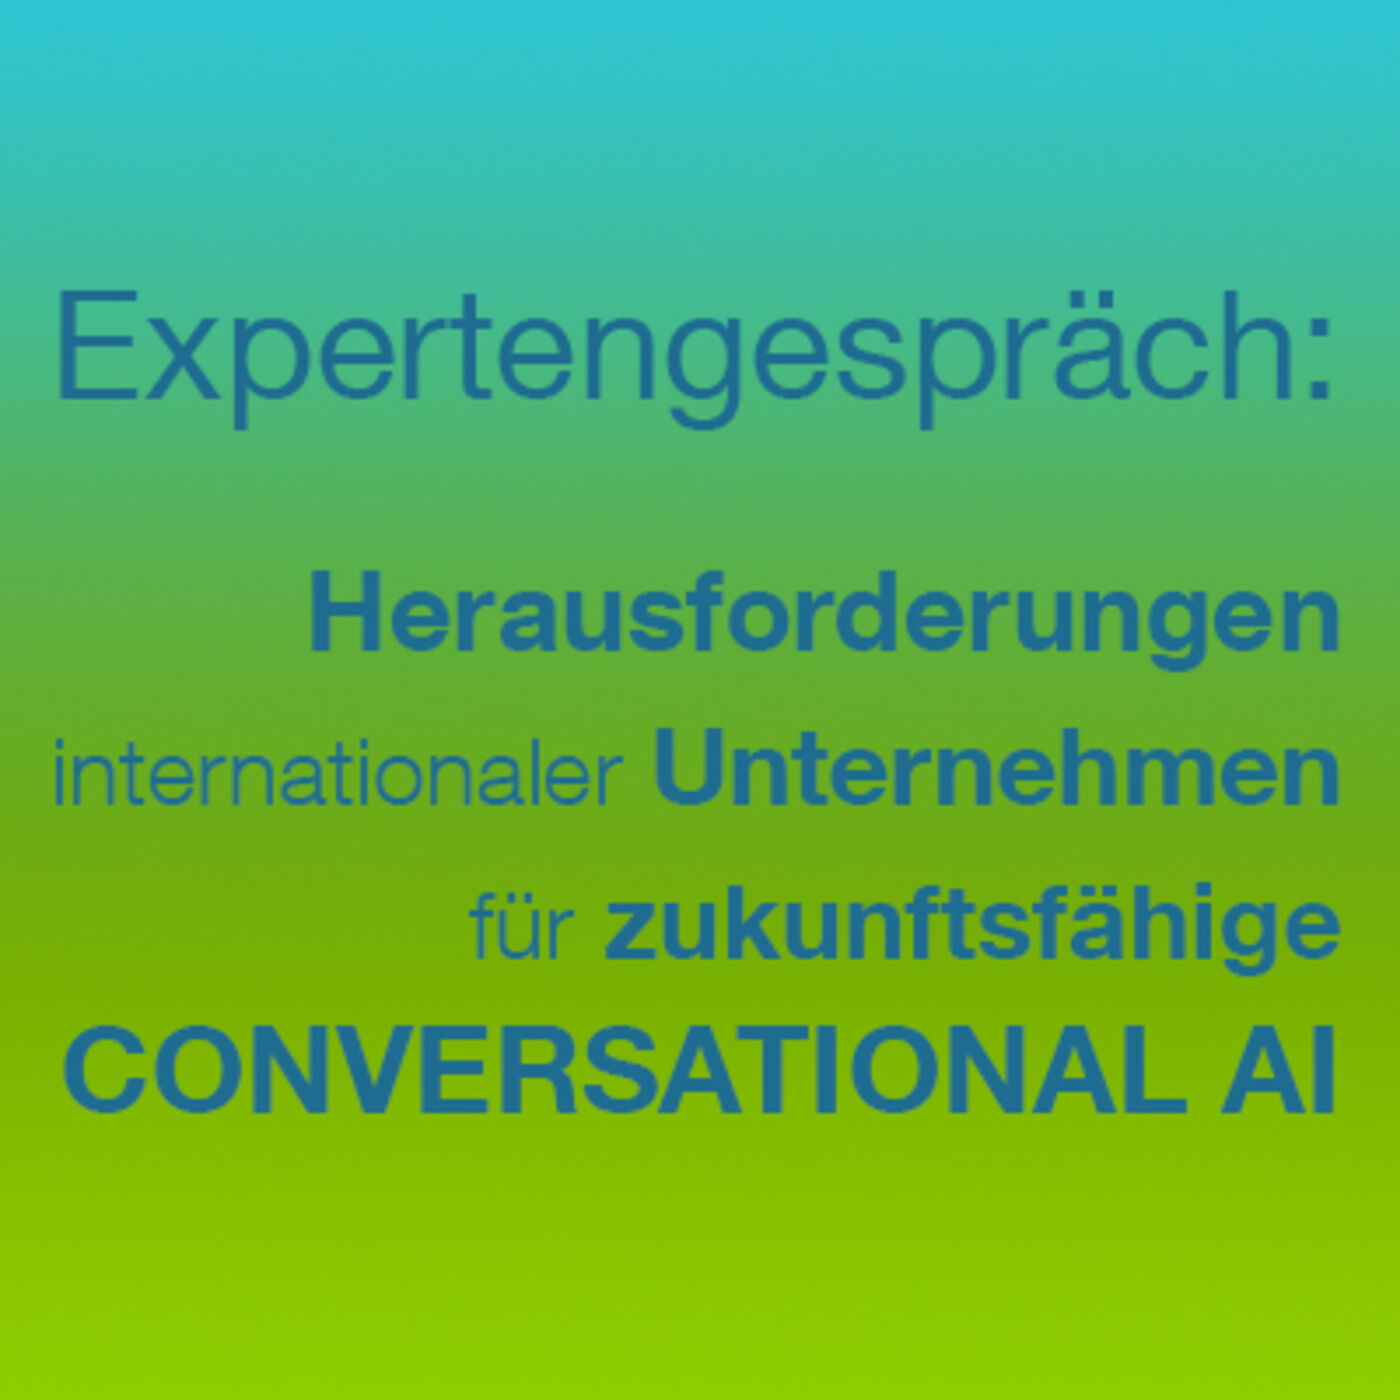 Herausforderungen im Contact Center internationaler Unternehmen